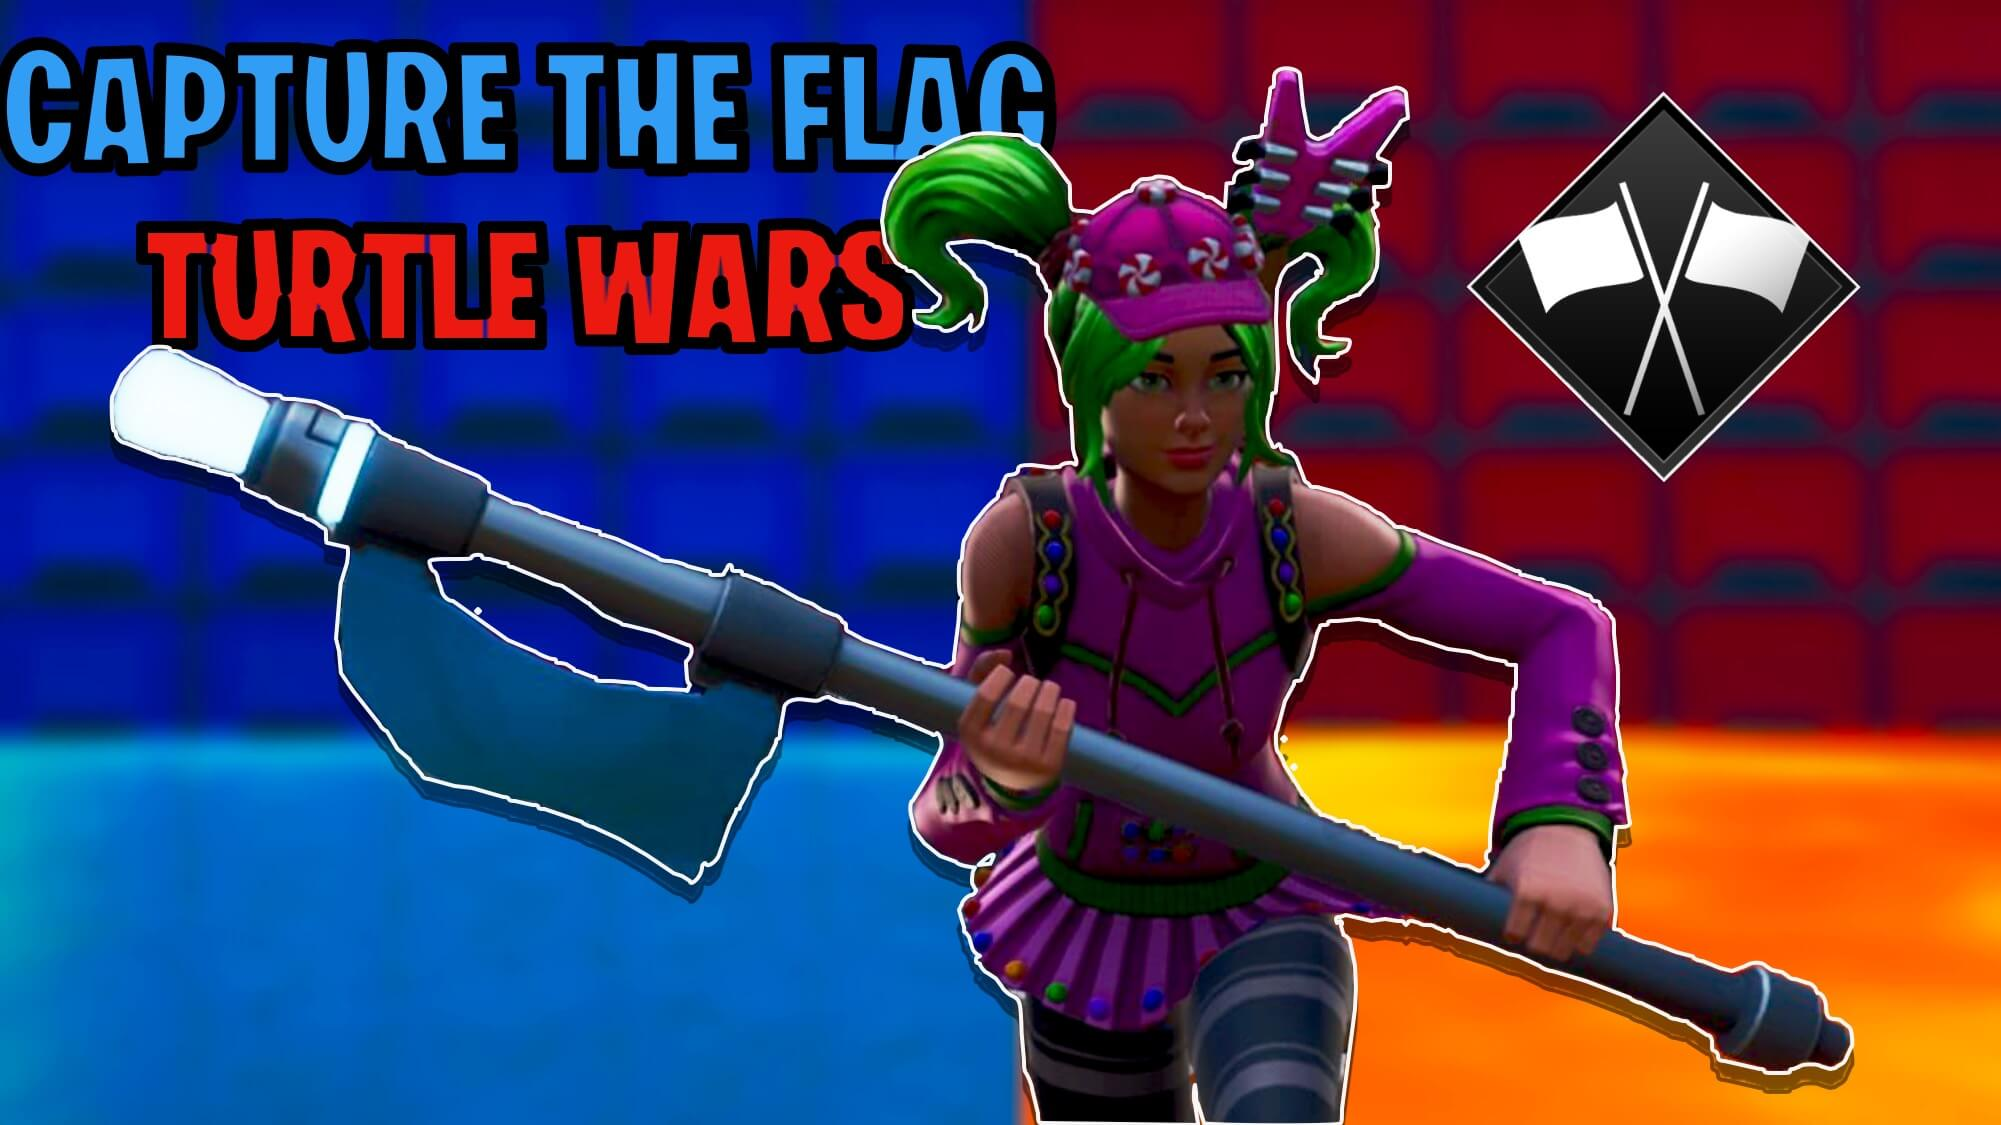 CAPTURE THE FLAG X TURTLE WARS